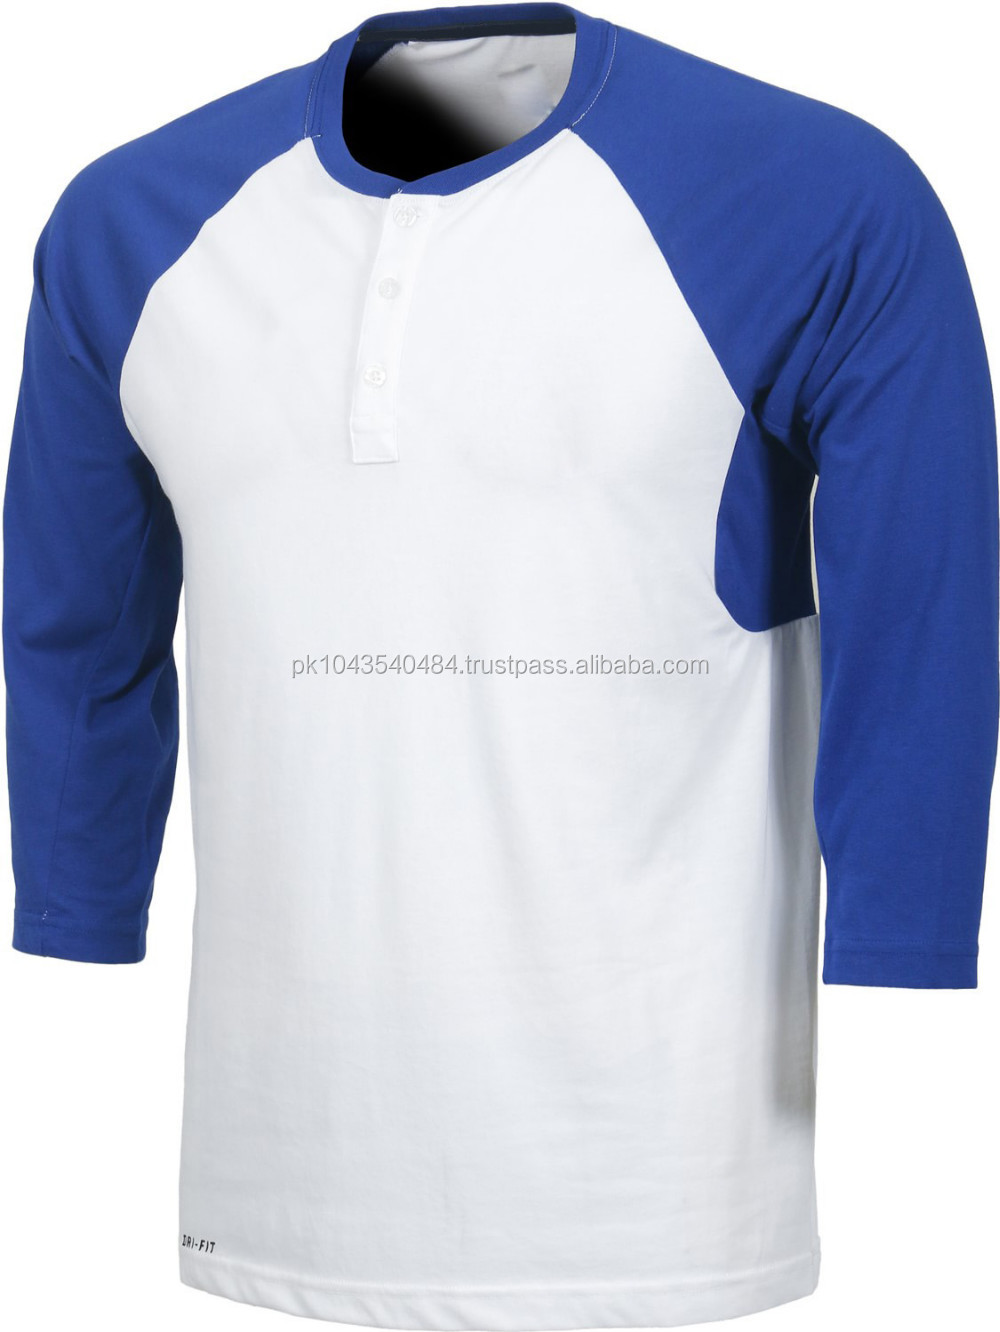 Custom design sublimated dry fit t shirt buy design your for Custom dry fit shirts